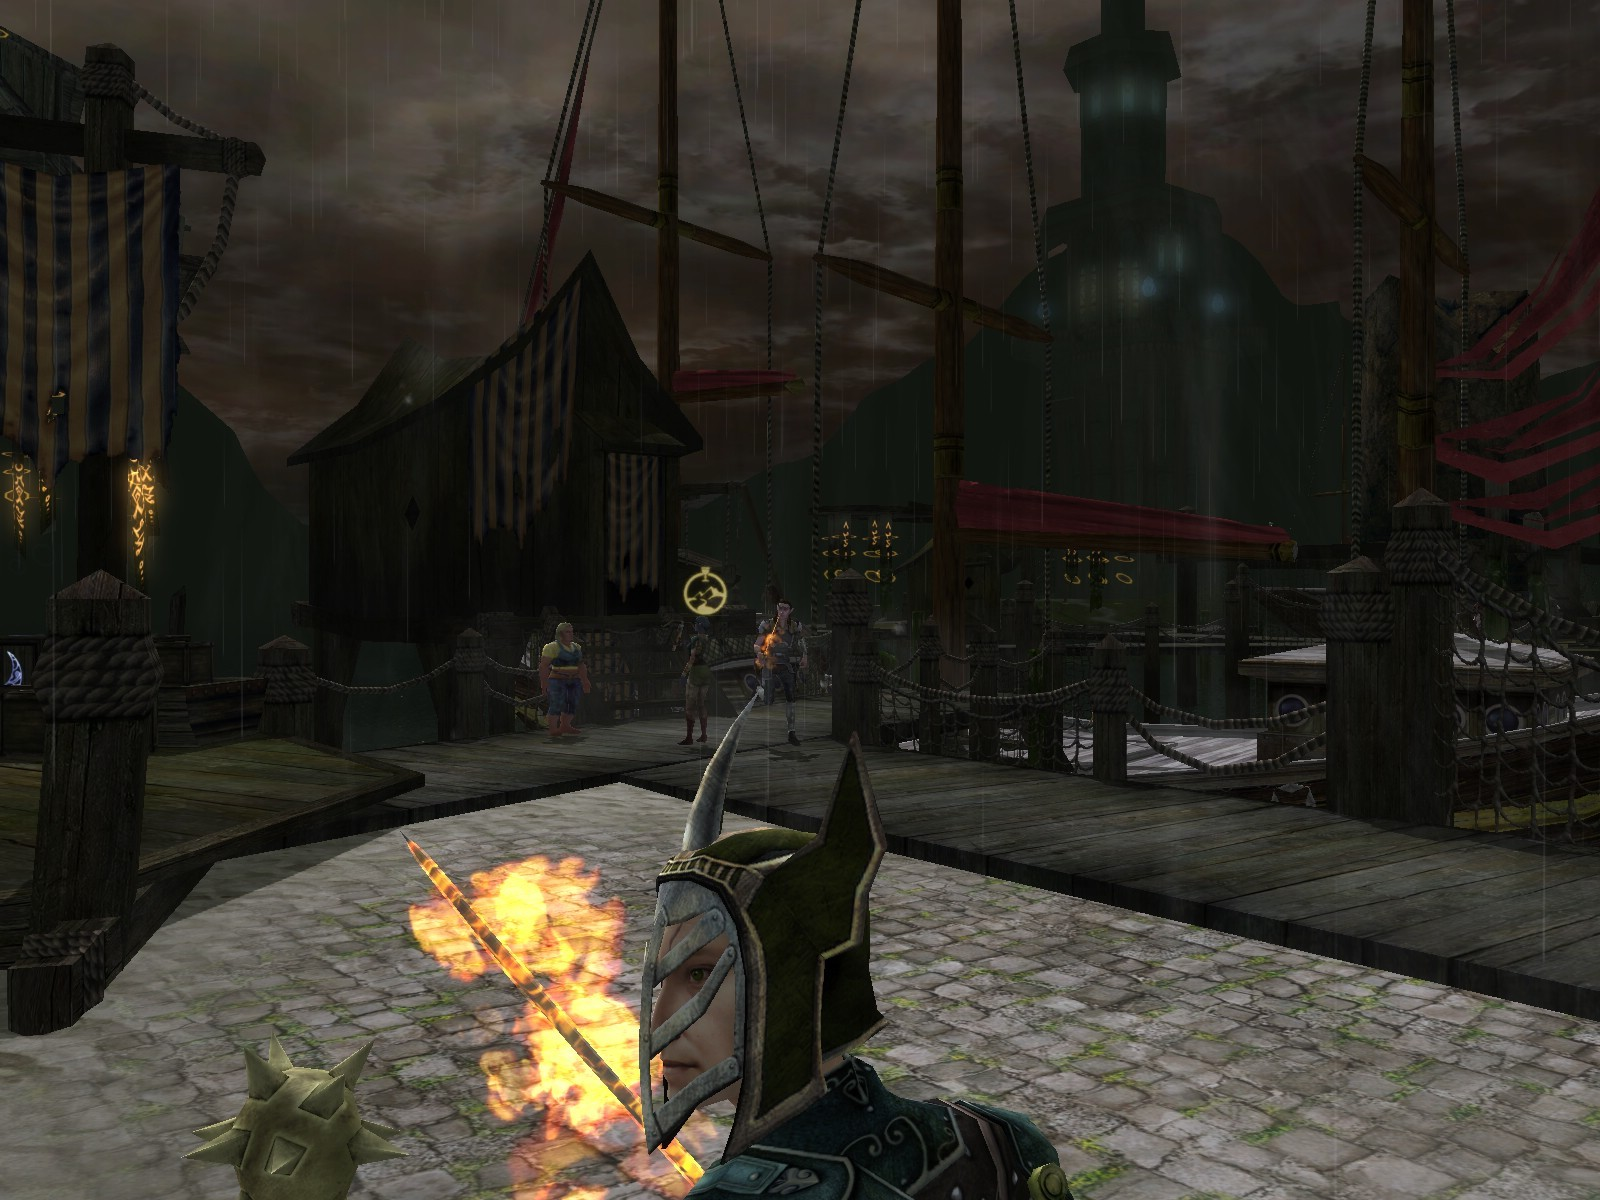 Dungeons & Dragons Online - DDO: Harbor's stormy today. Poor flame rapier.